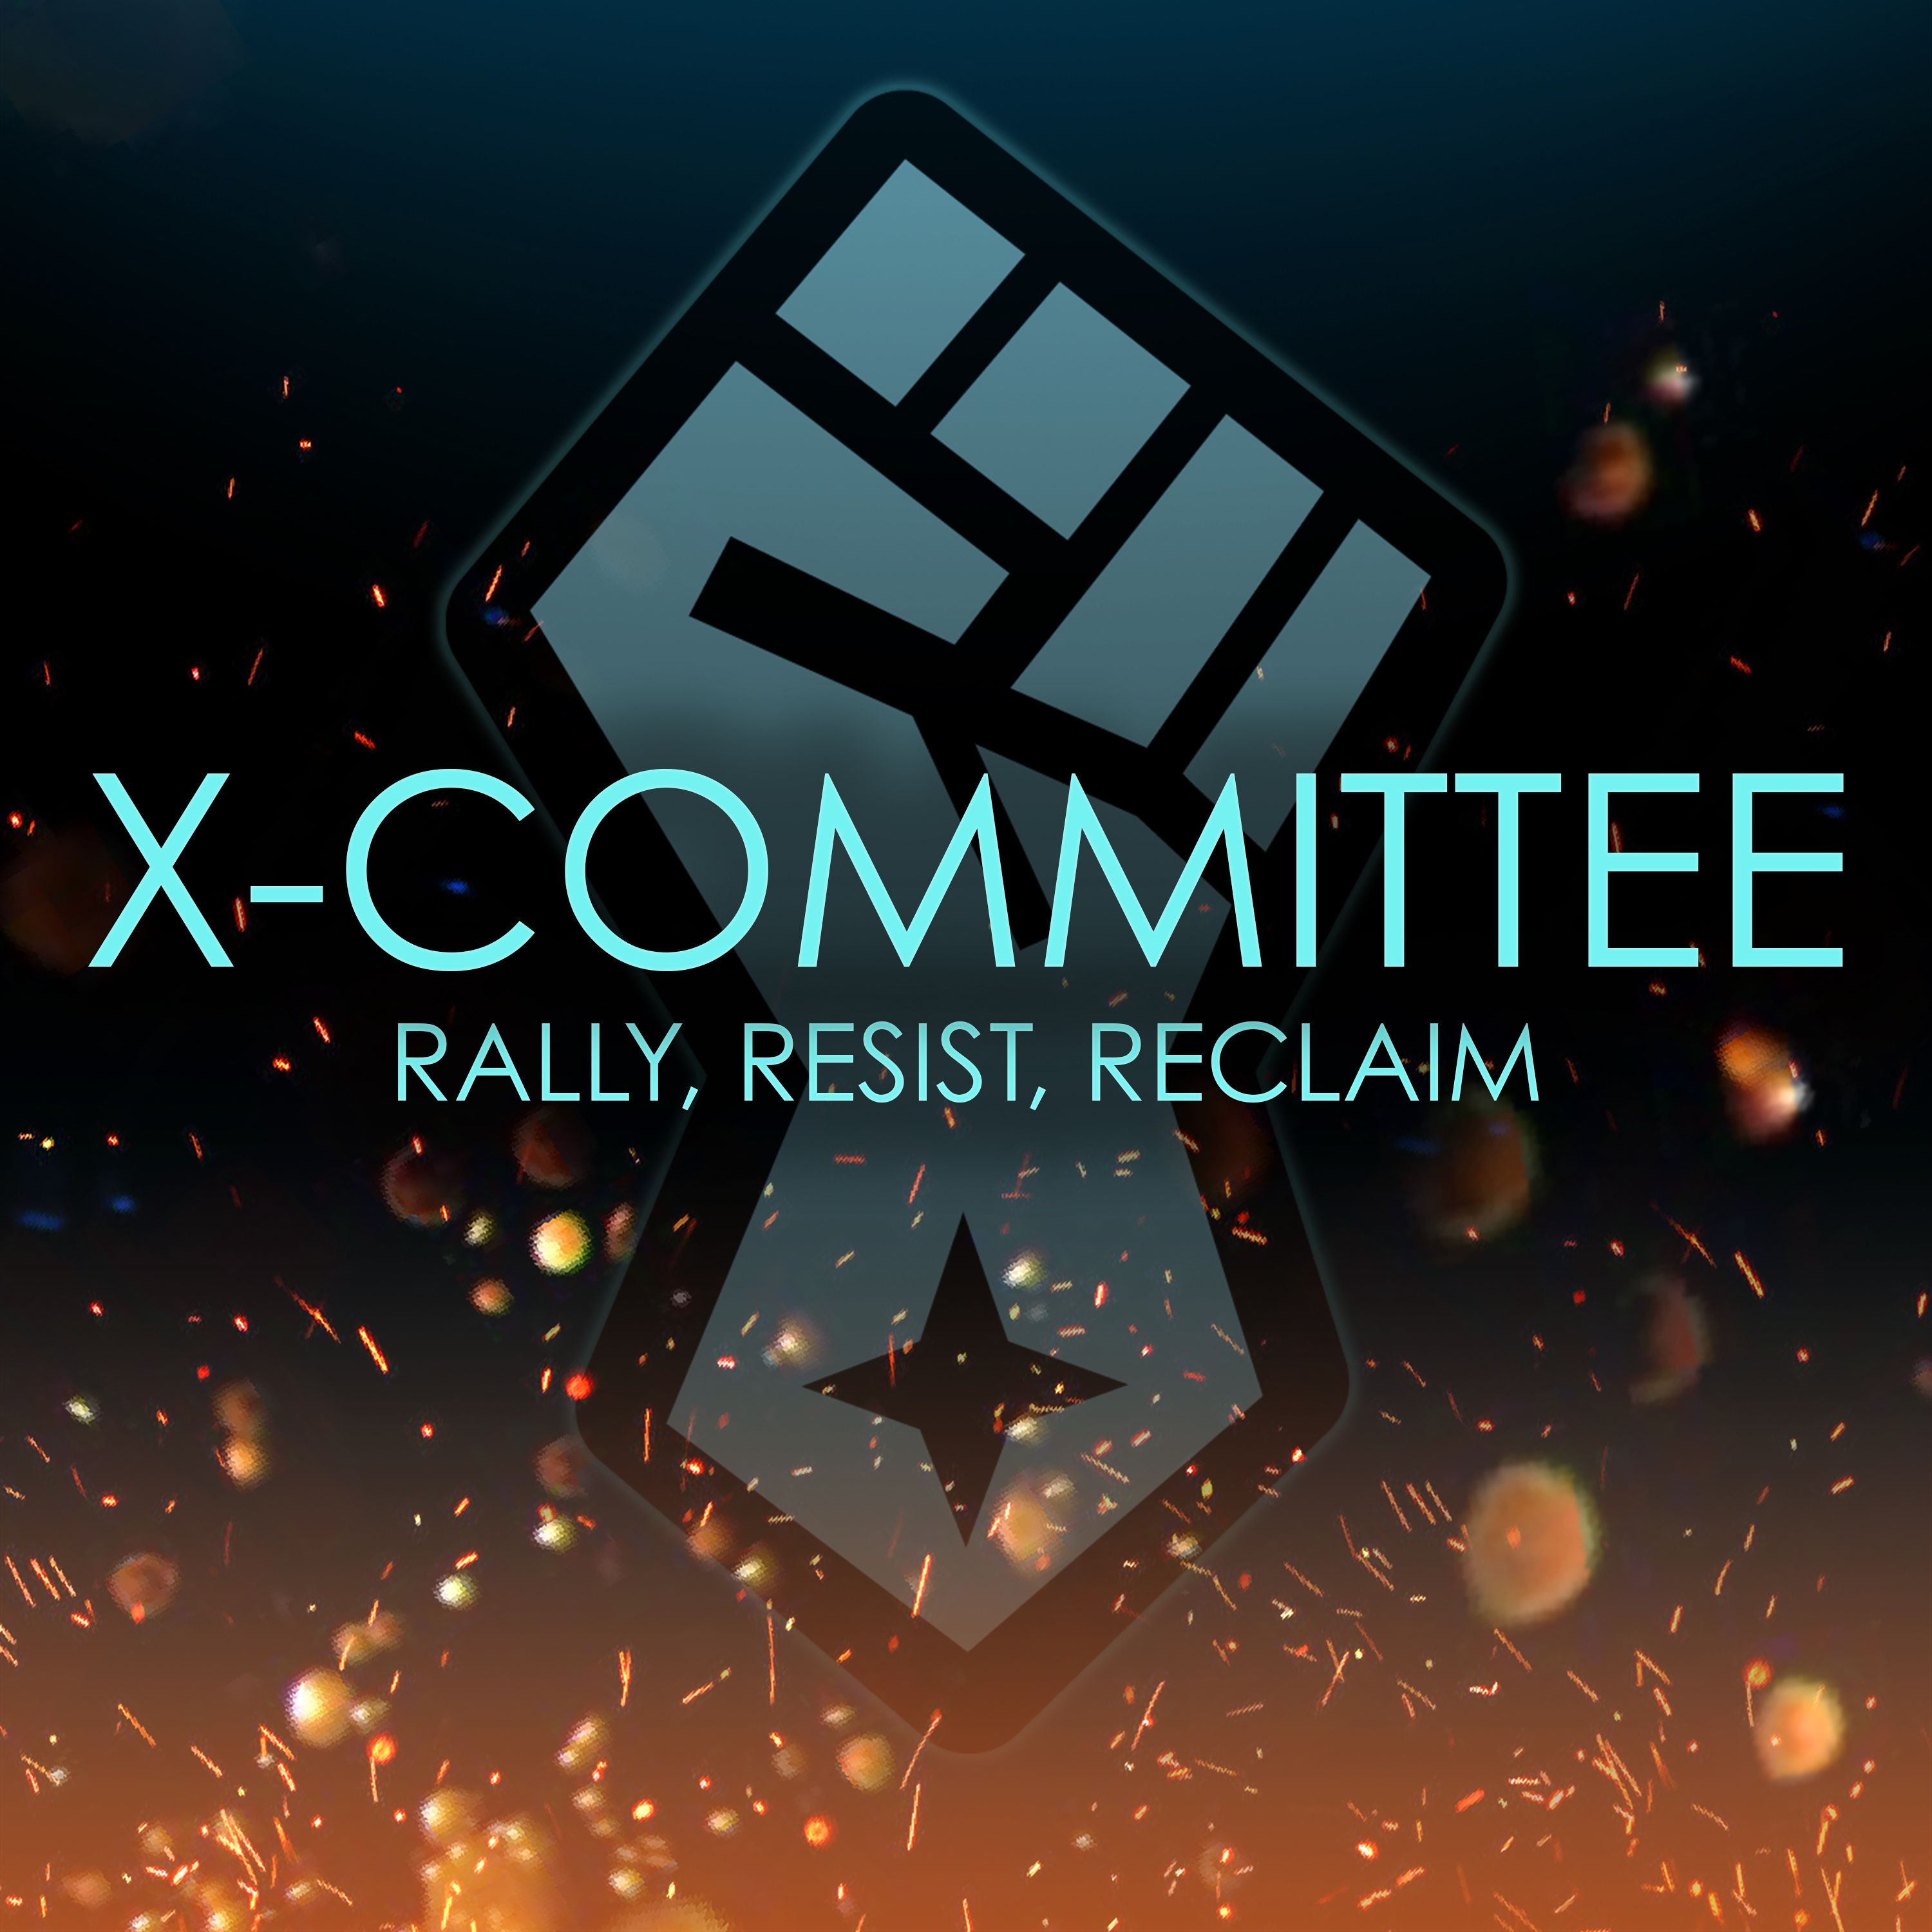 X-COMMITTEE